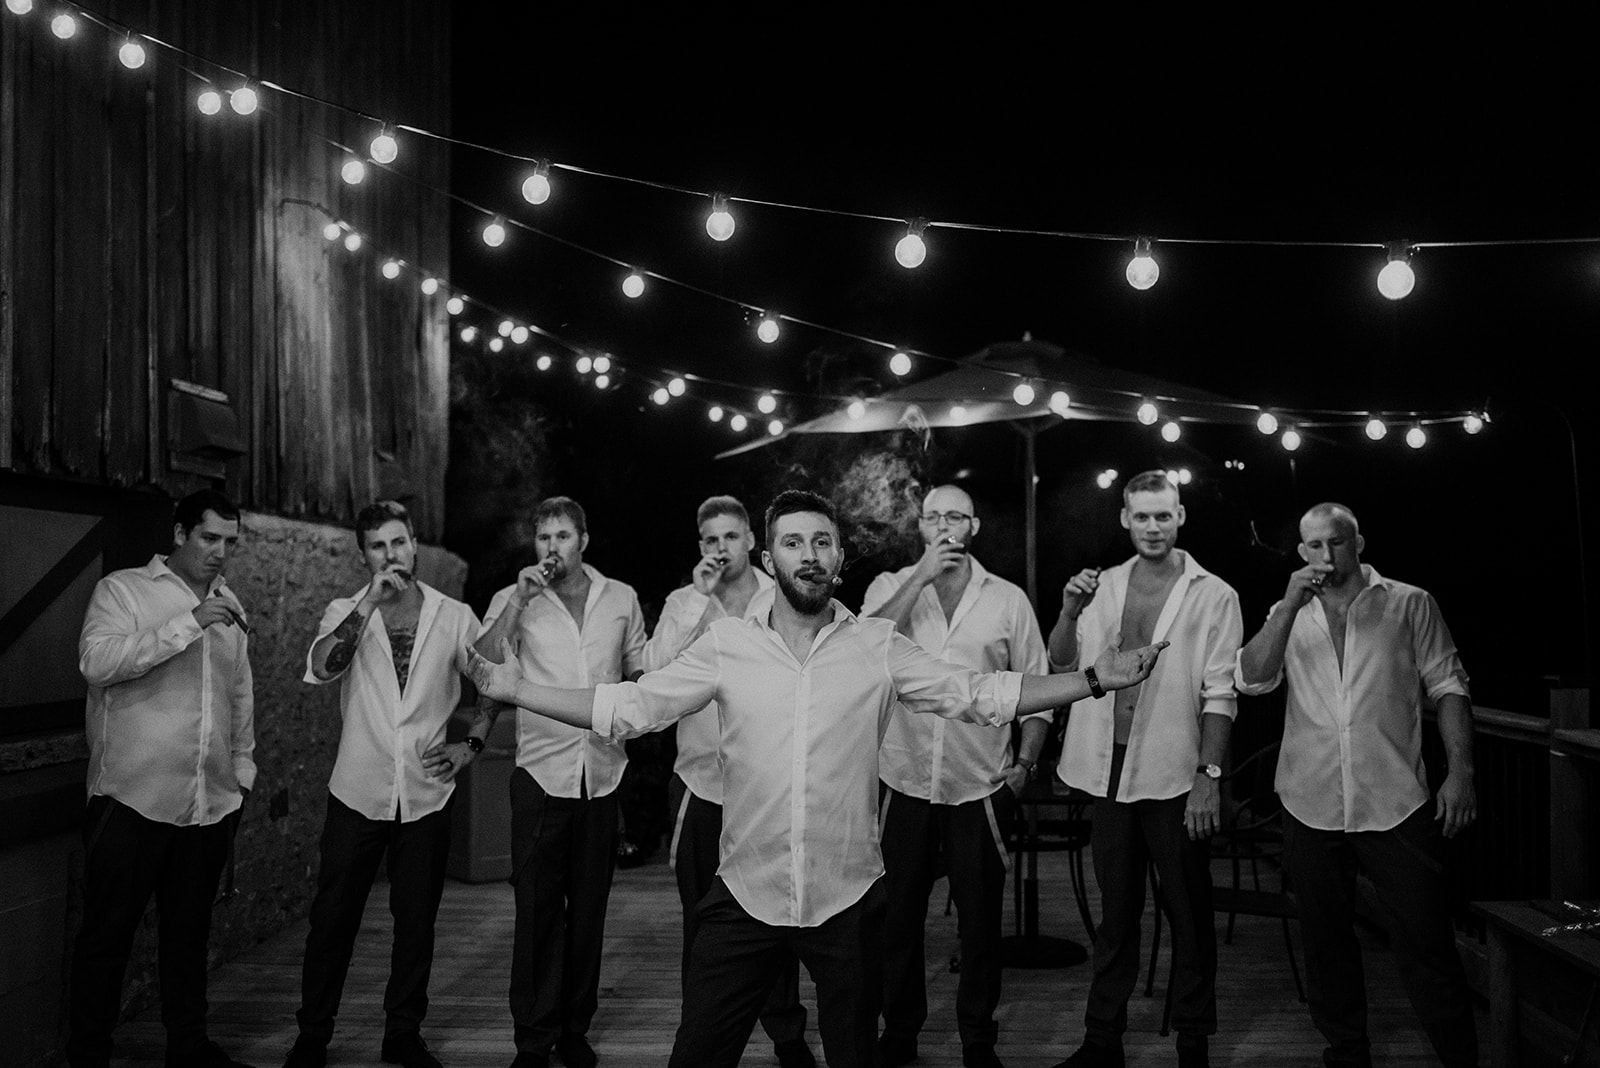 overthevineswisconsinwedding_1677.jpg